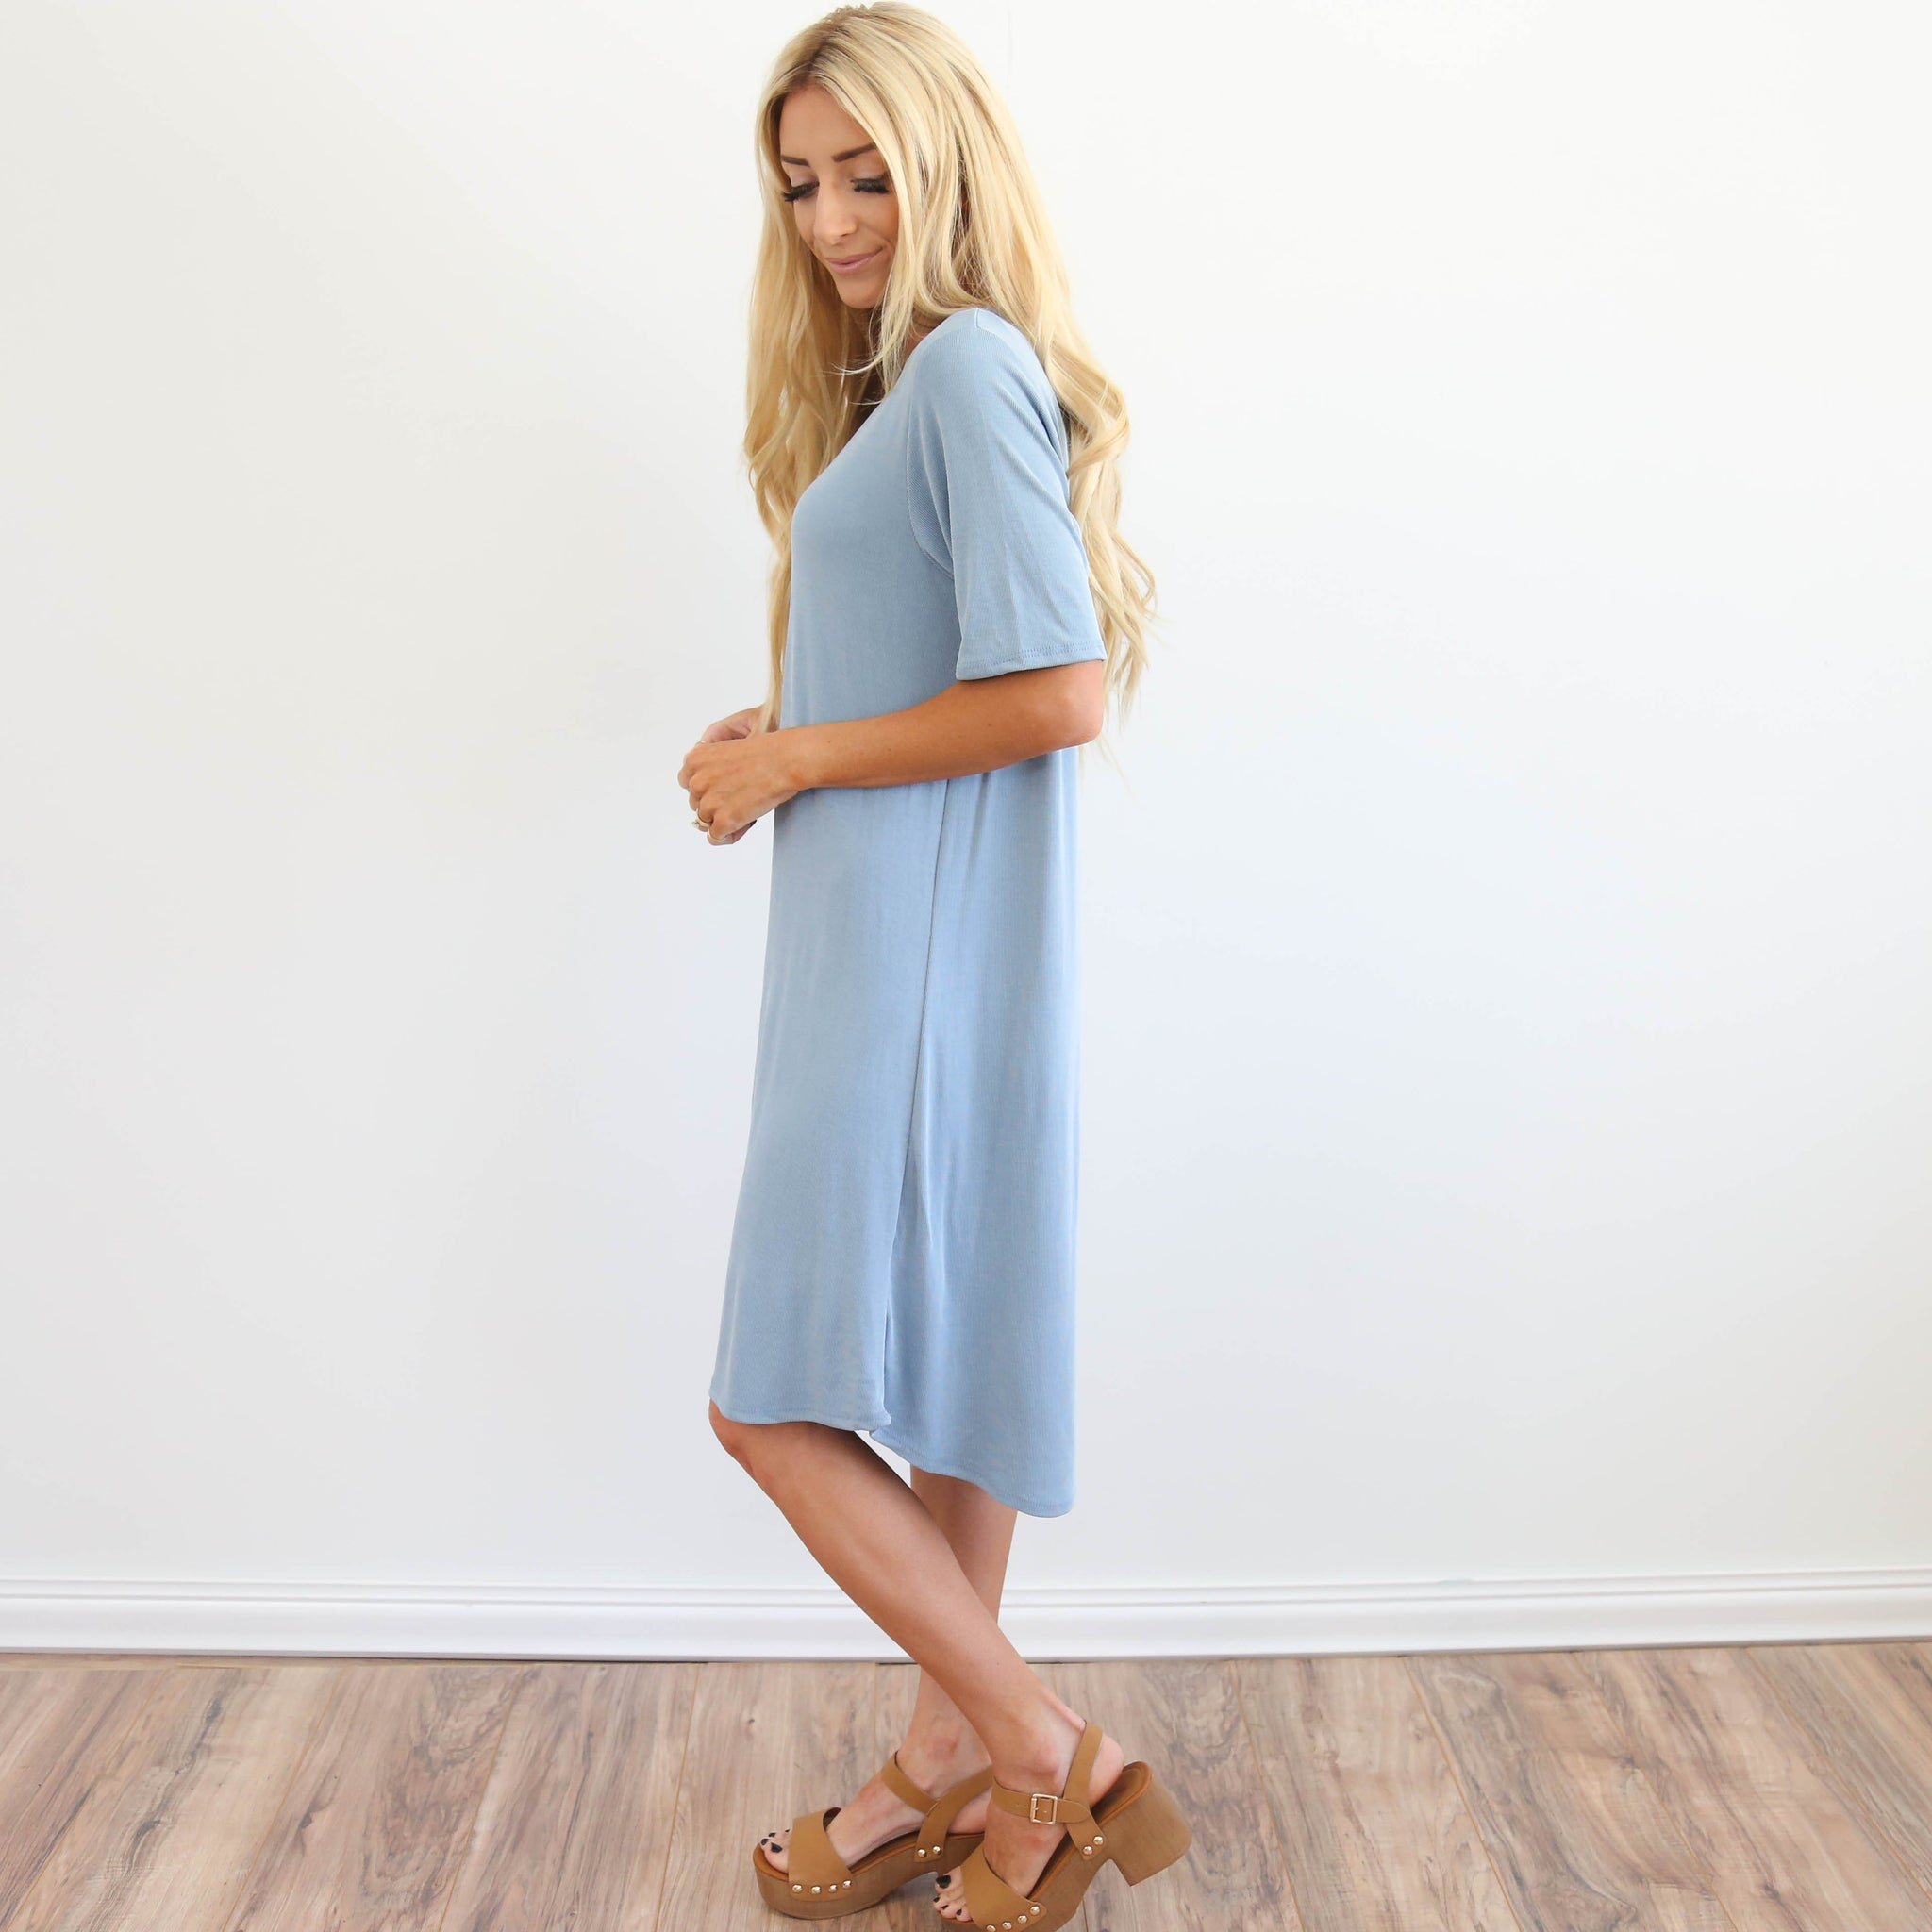 Solana Dress in Dusty Blue